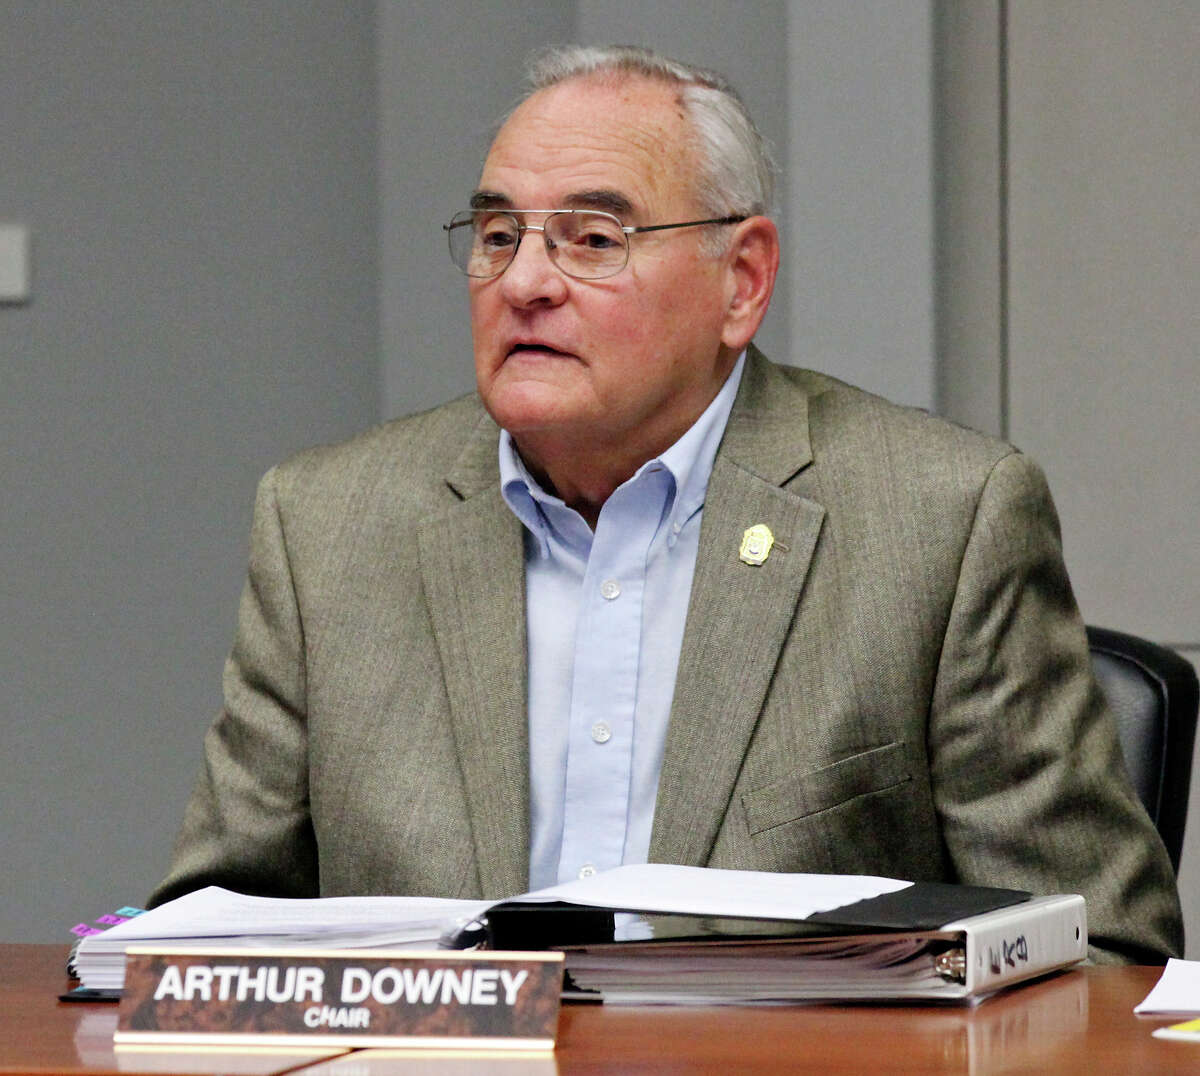 City of San Antonio Ethics Review Board Chairman Arthur Downey speaks during a meeting held Monday Dec. 17, 2012. The board is meeting to determine whether three current and former city employees violated the ethics code.